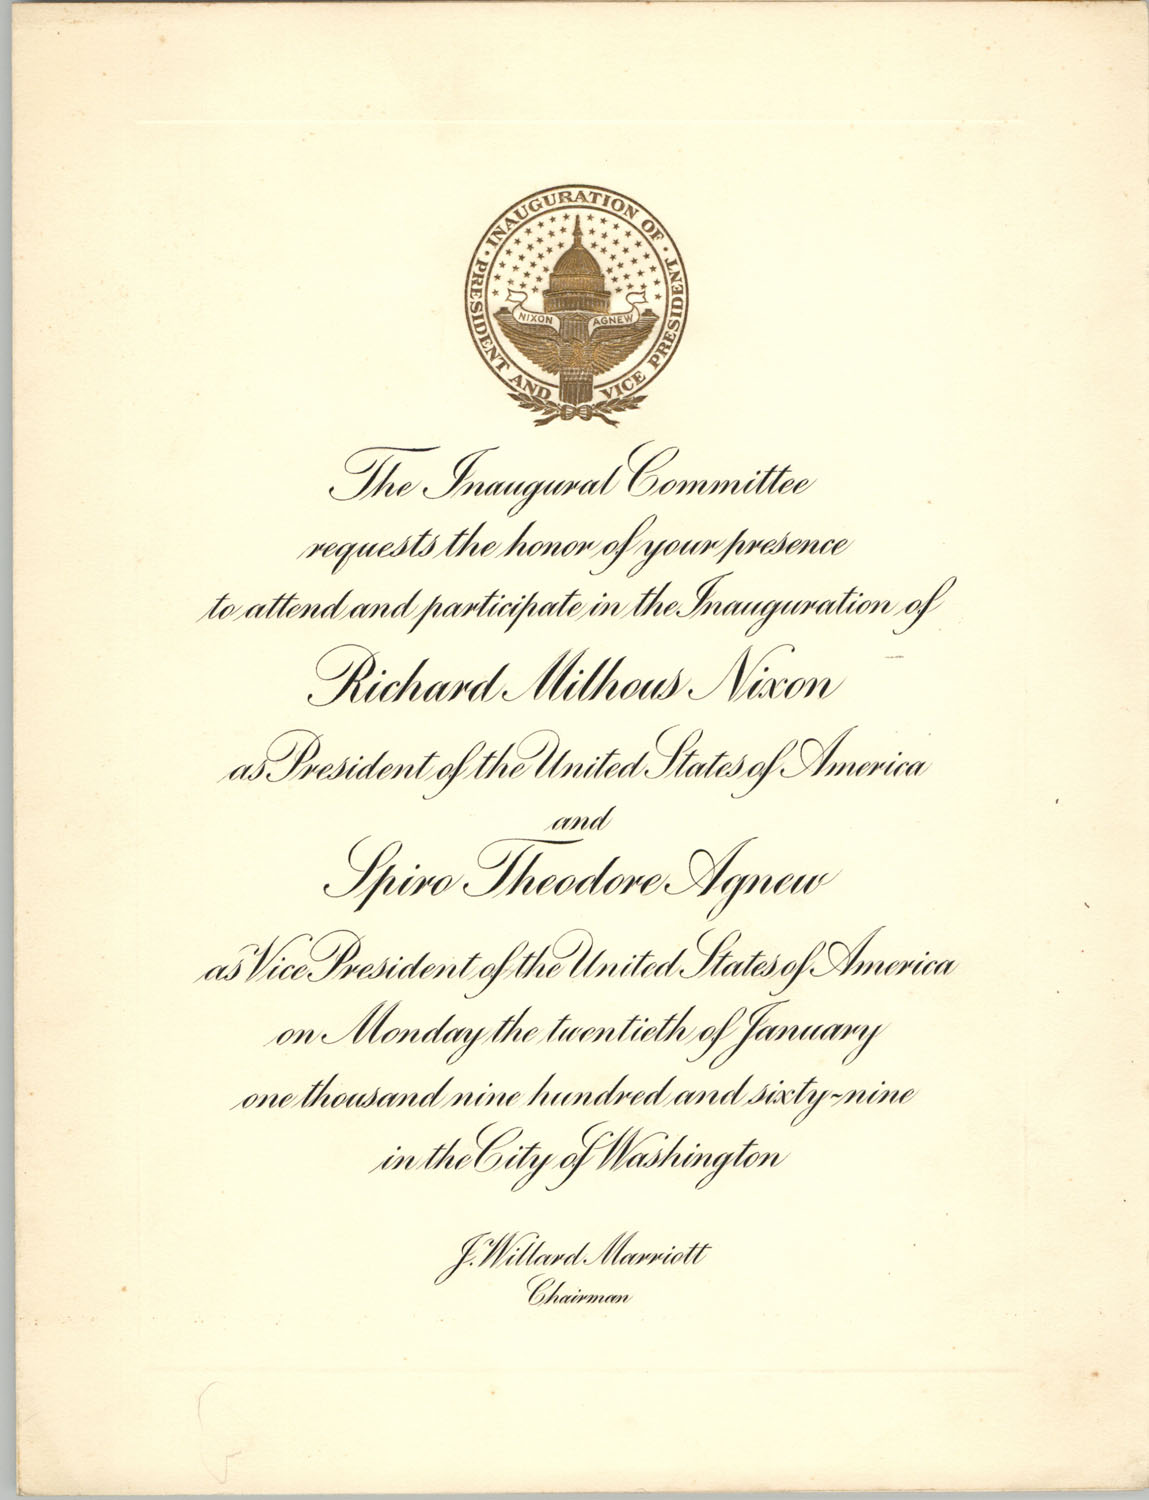 Invitation to Inauguration of Richard Nixon